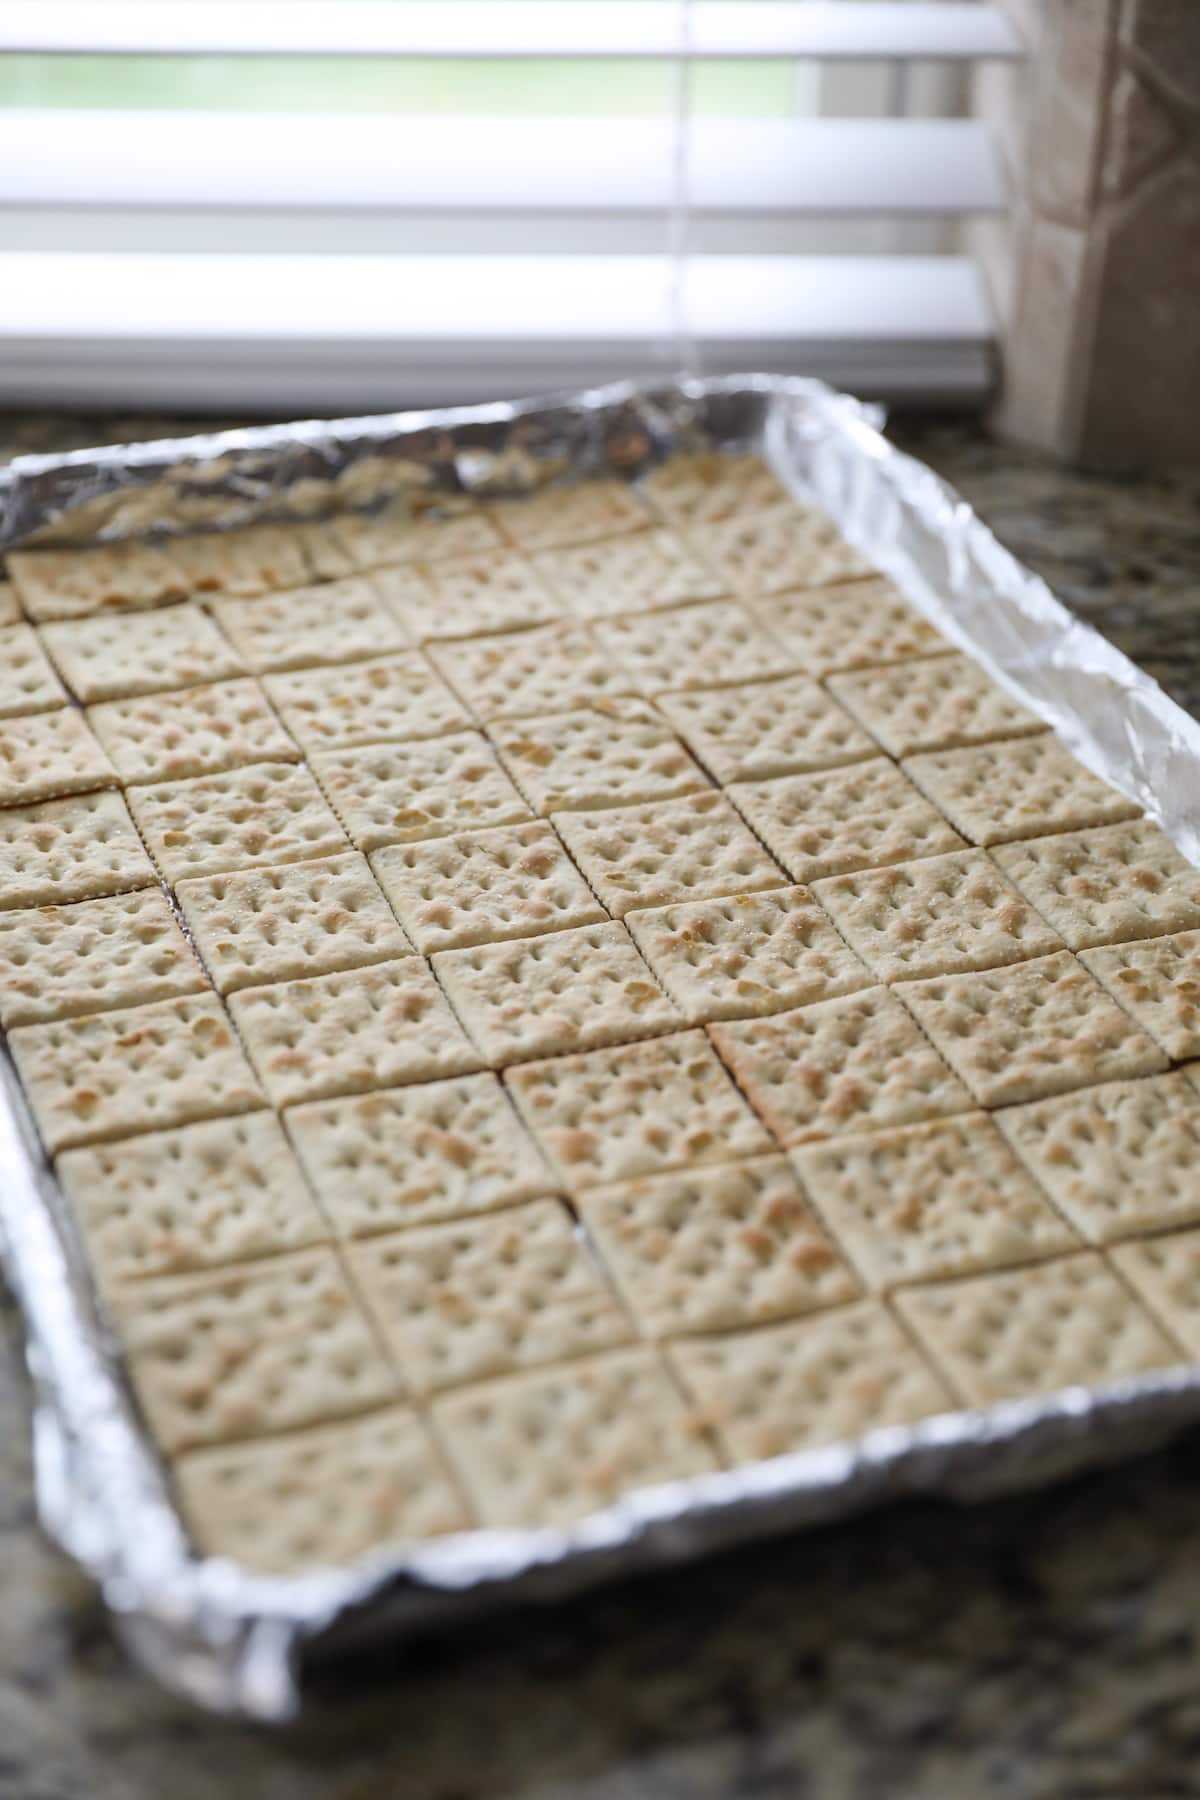 crackers lined on baking sheet